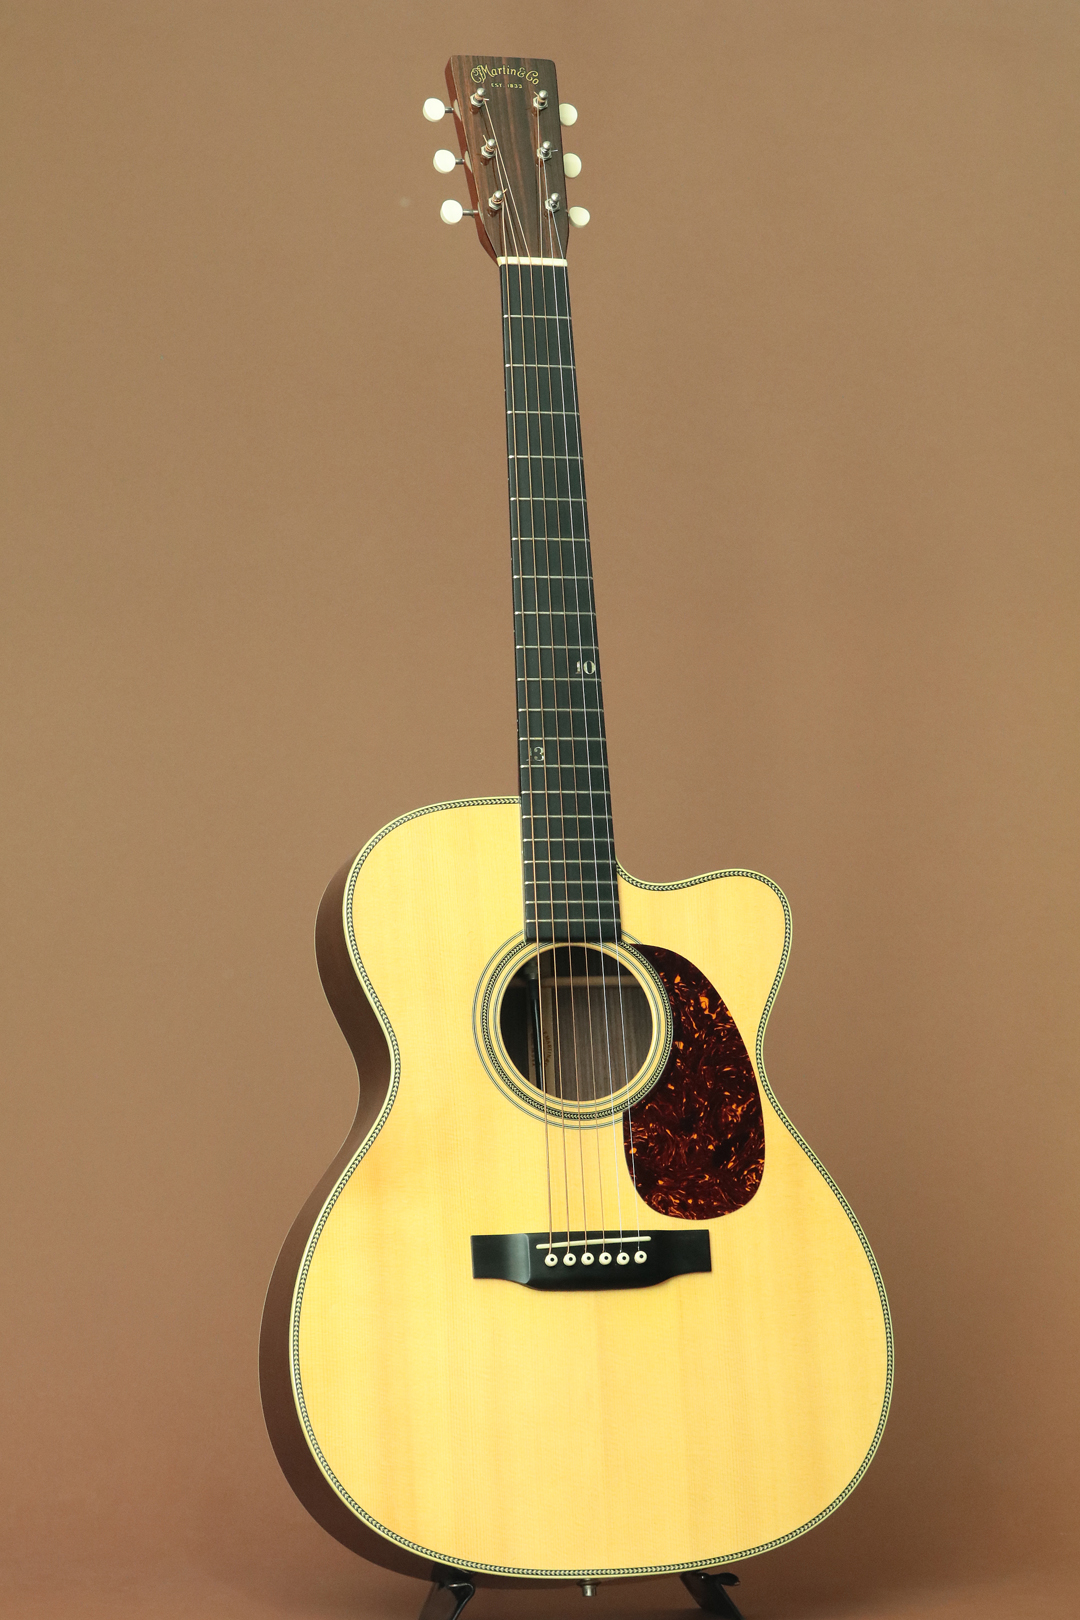 MARTIN CTM OOOC-28 1310 Isato Nakagawa 45th Anni. with M-Factory #202 マーチン